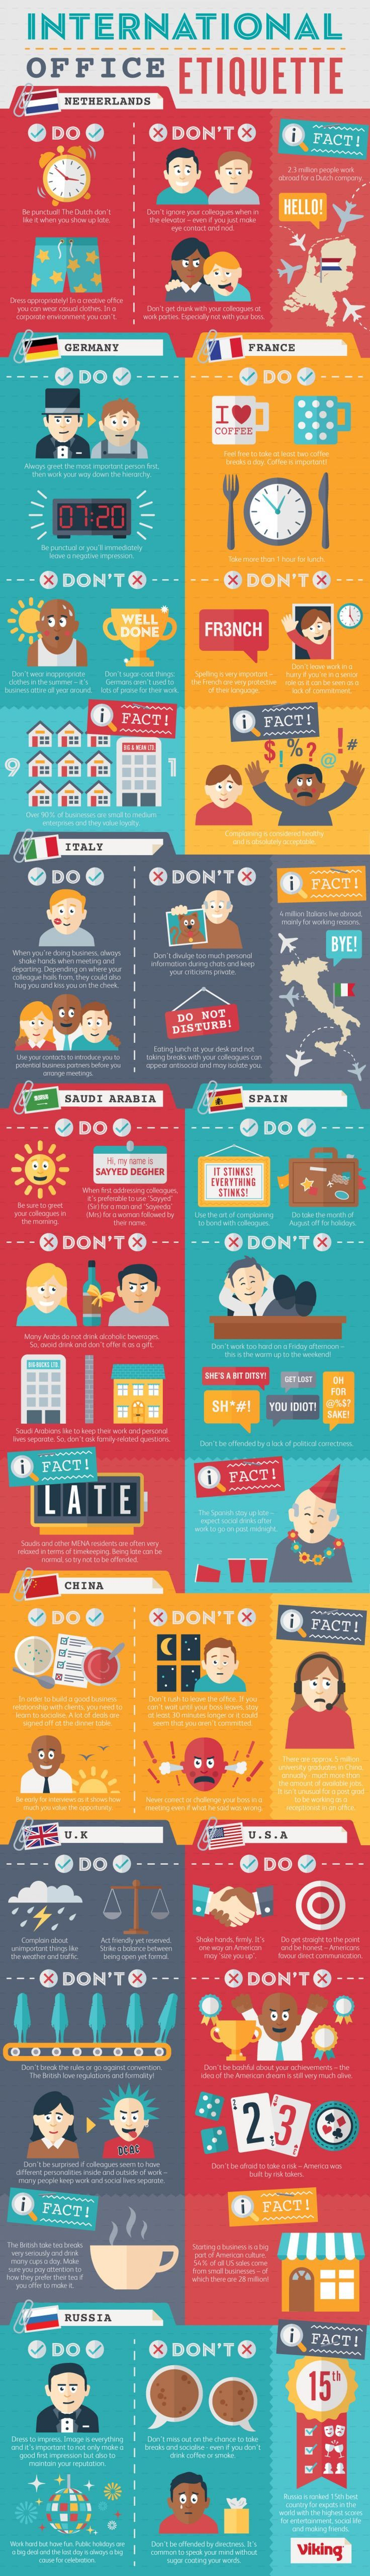 International Office Etiquette Infographic What Are The Norms In Your Country Vs